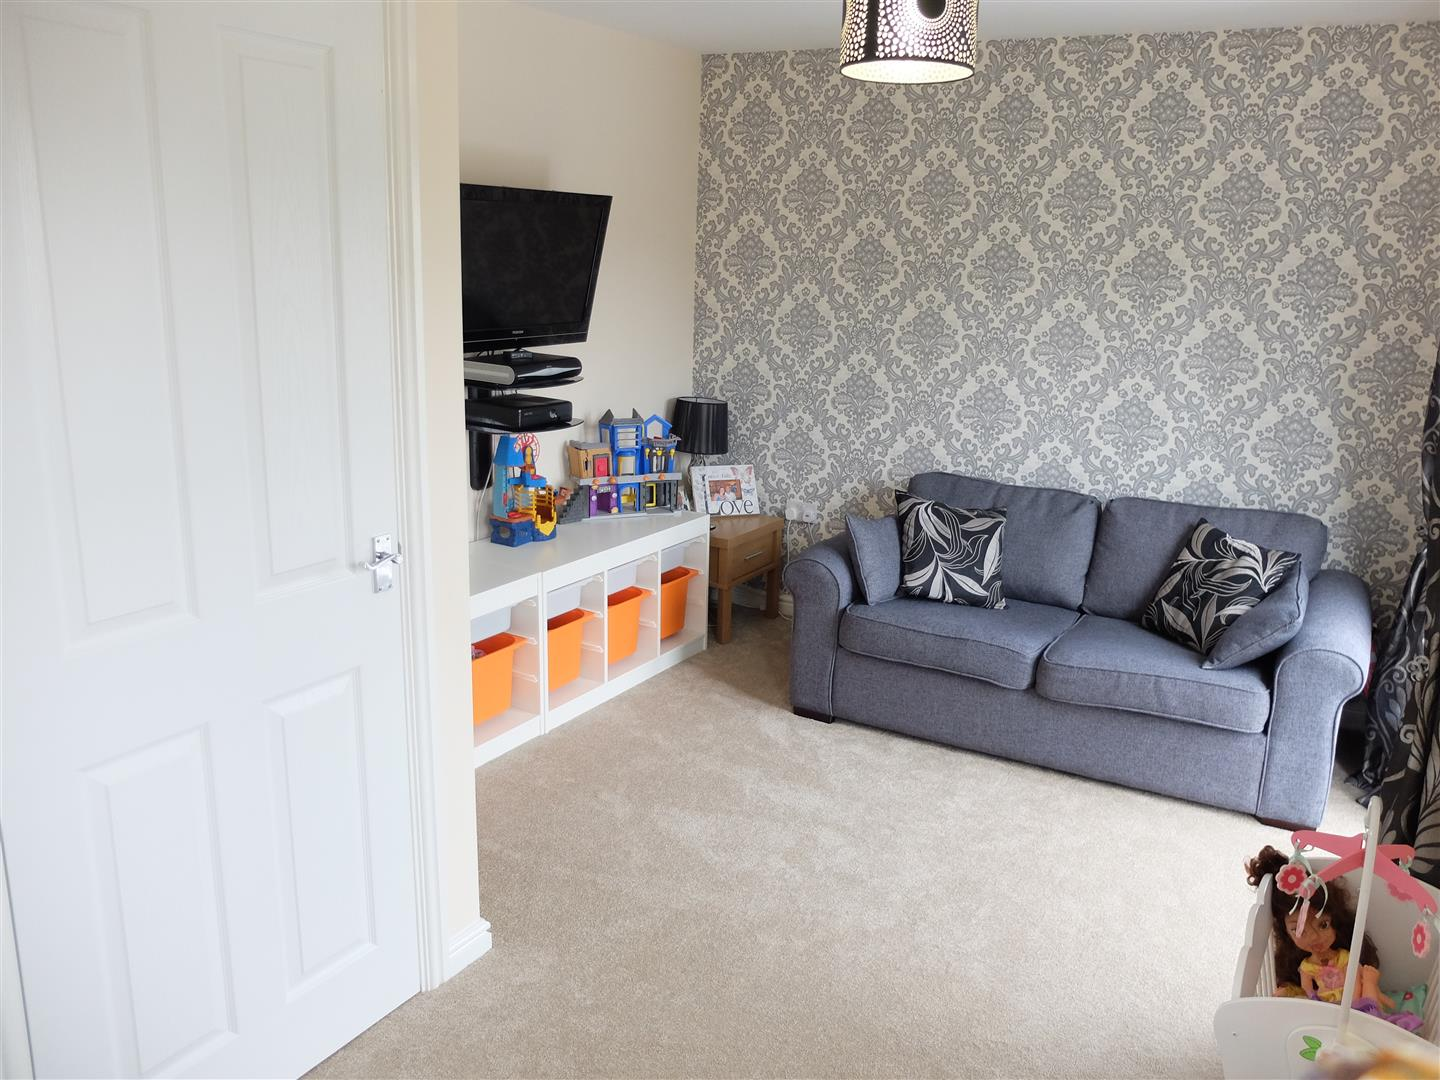 4 Bedrooms House - Townhouse For Sale 16 Tramside Way Carlisle 38,000